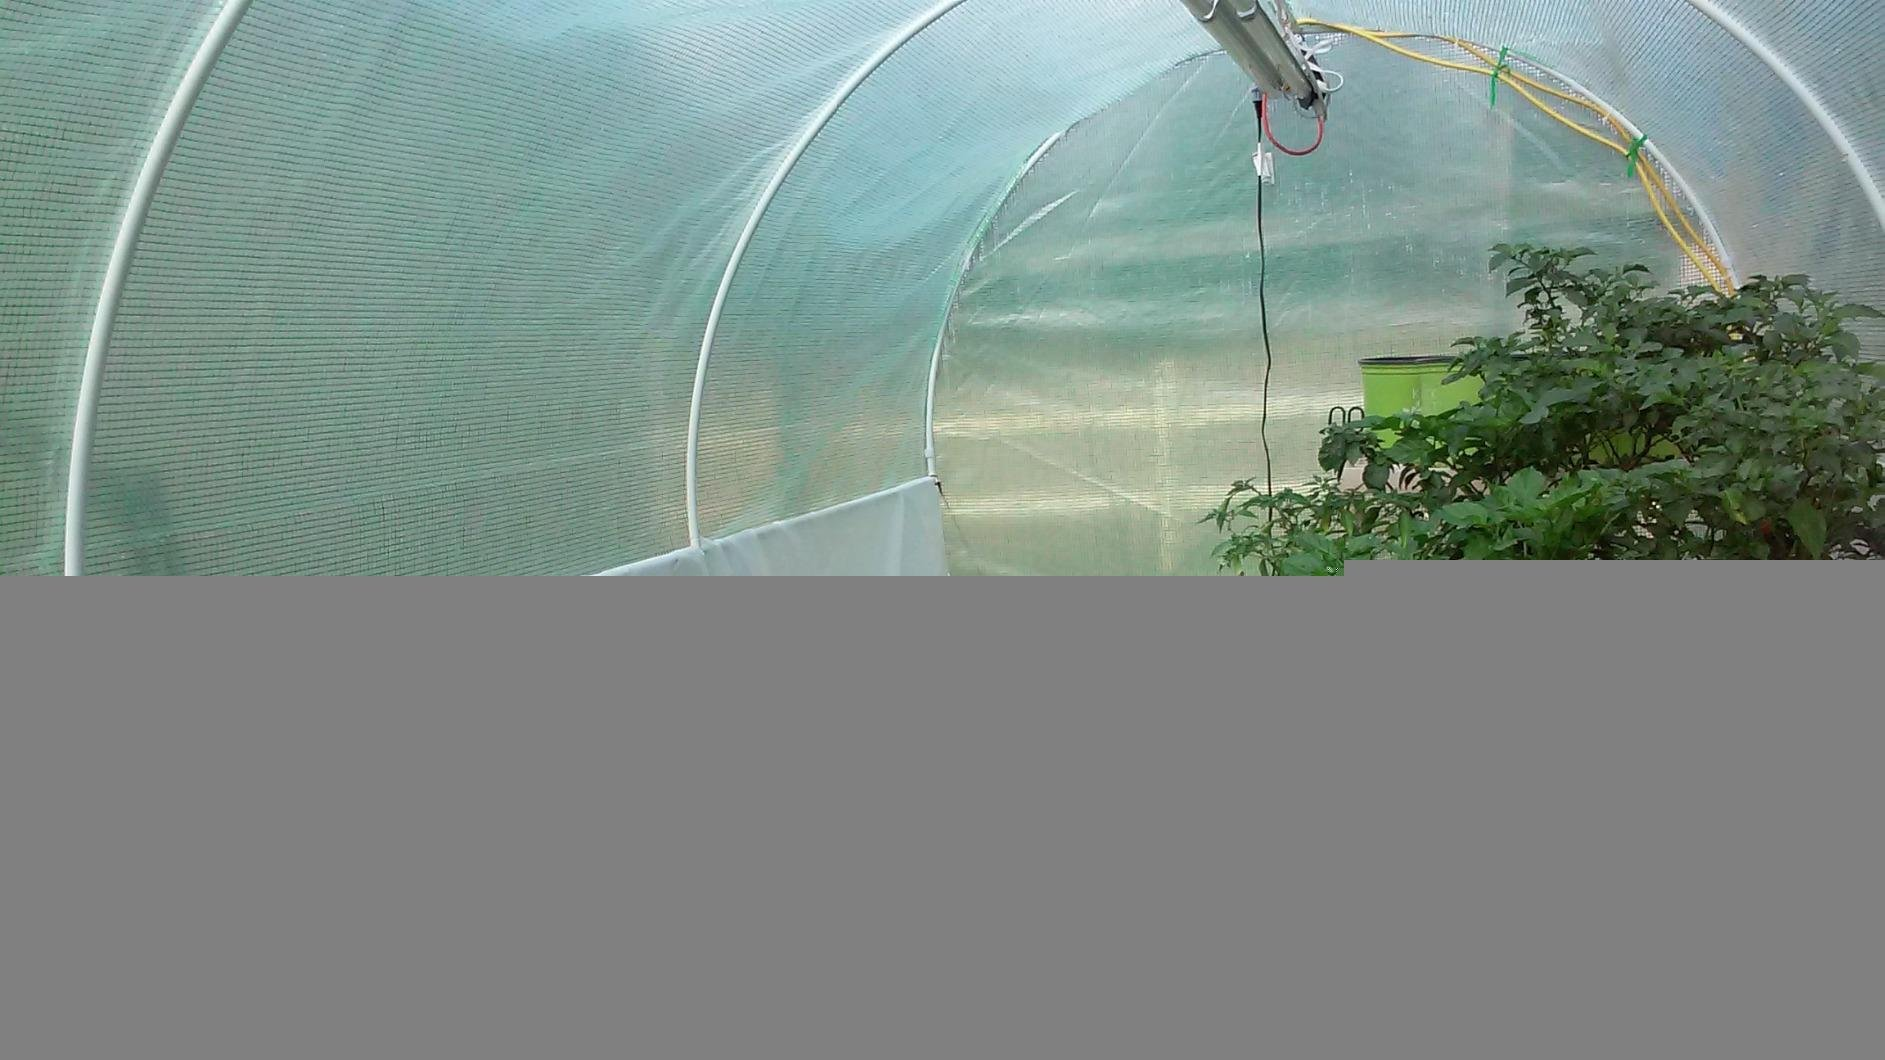 Peaktop Greenhouse 15' X 7' X 7' Large Outdoor Green House Plant Gardening Garden New